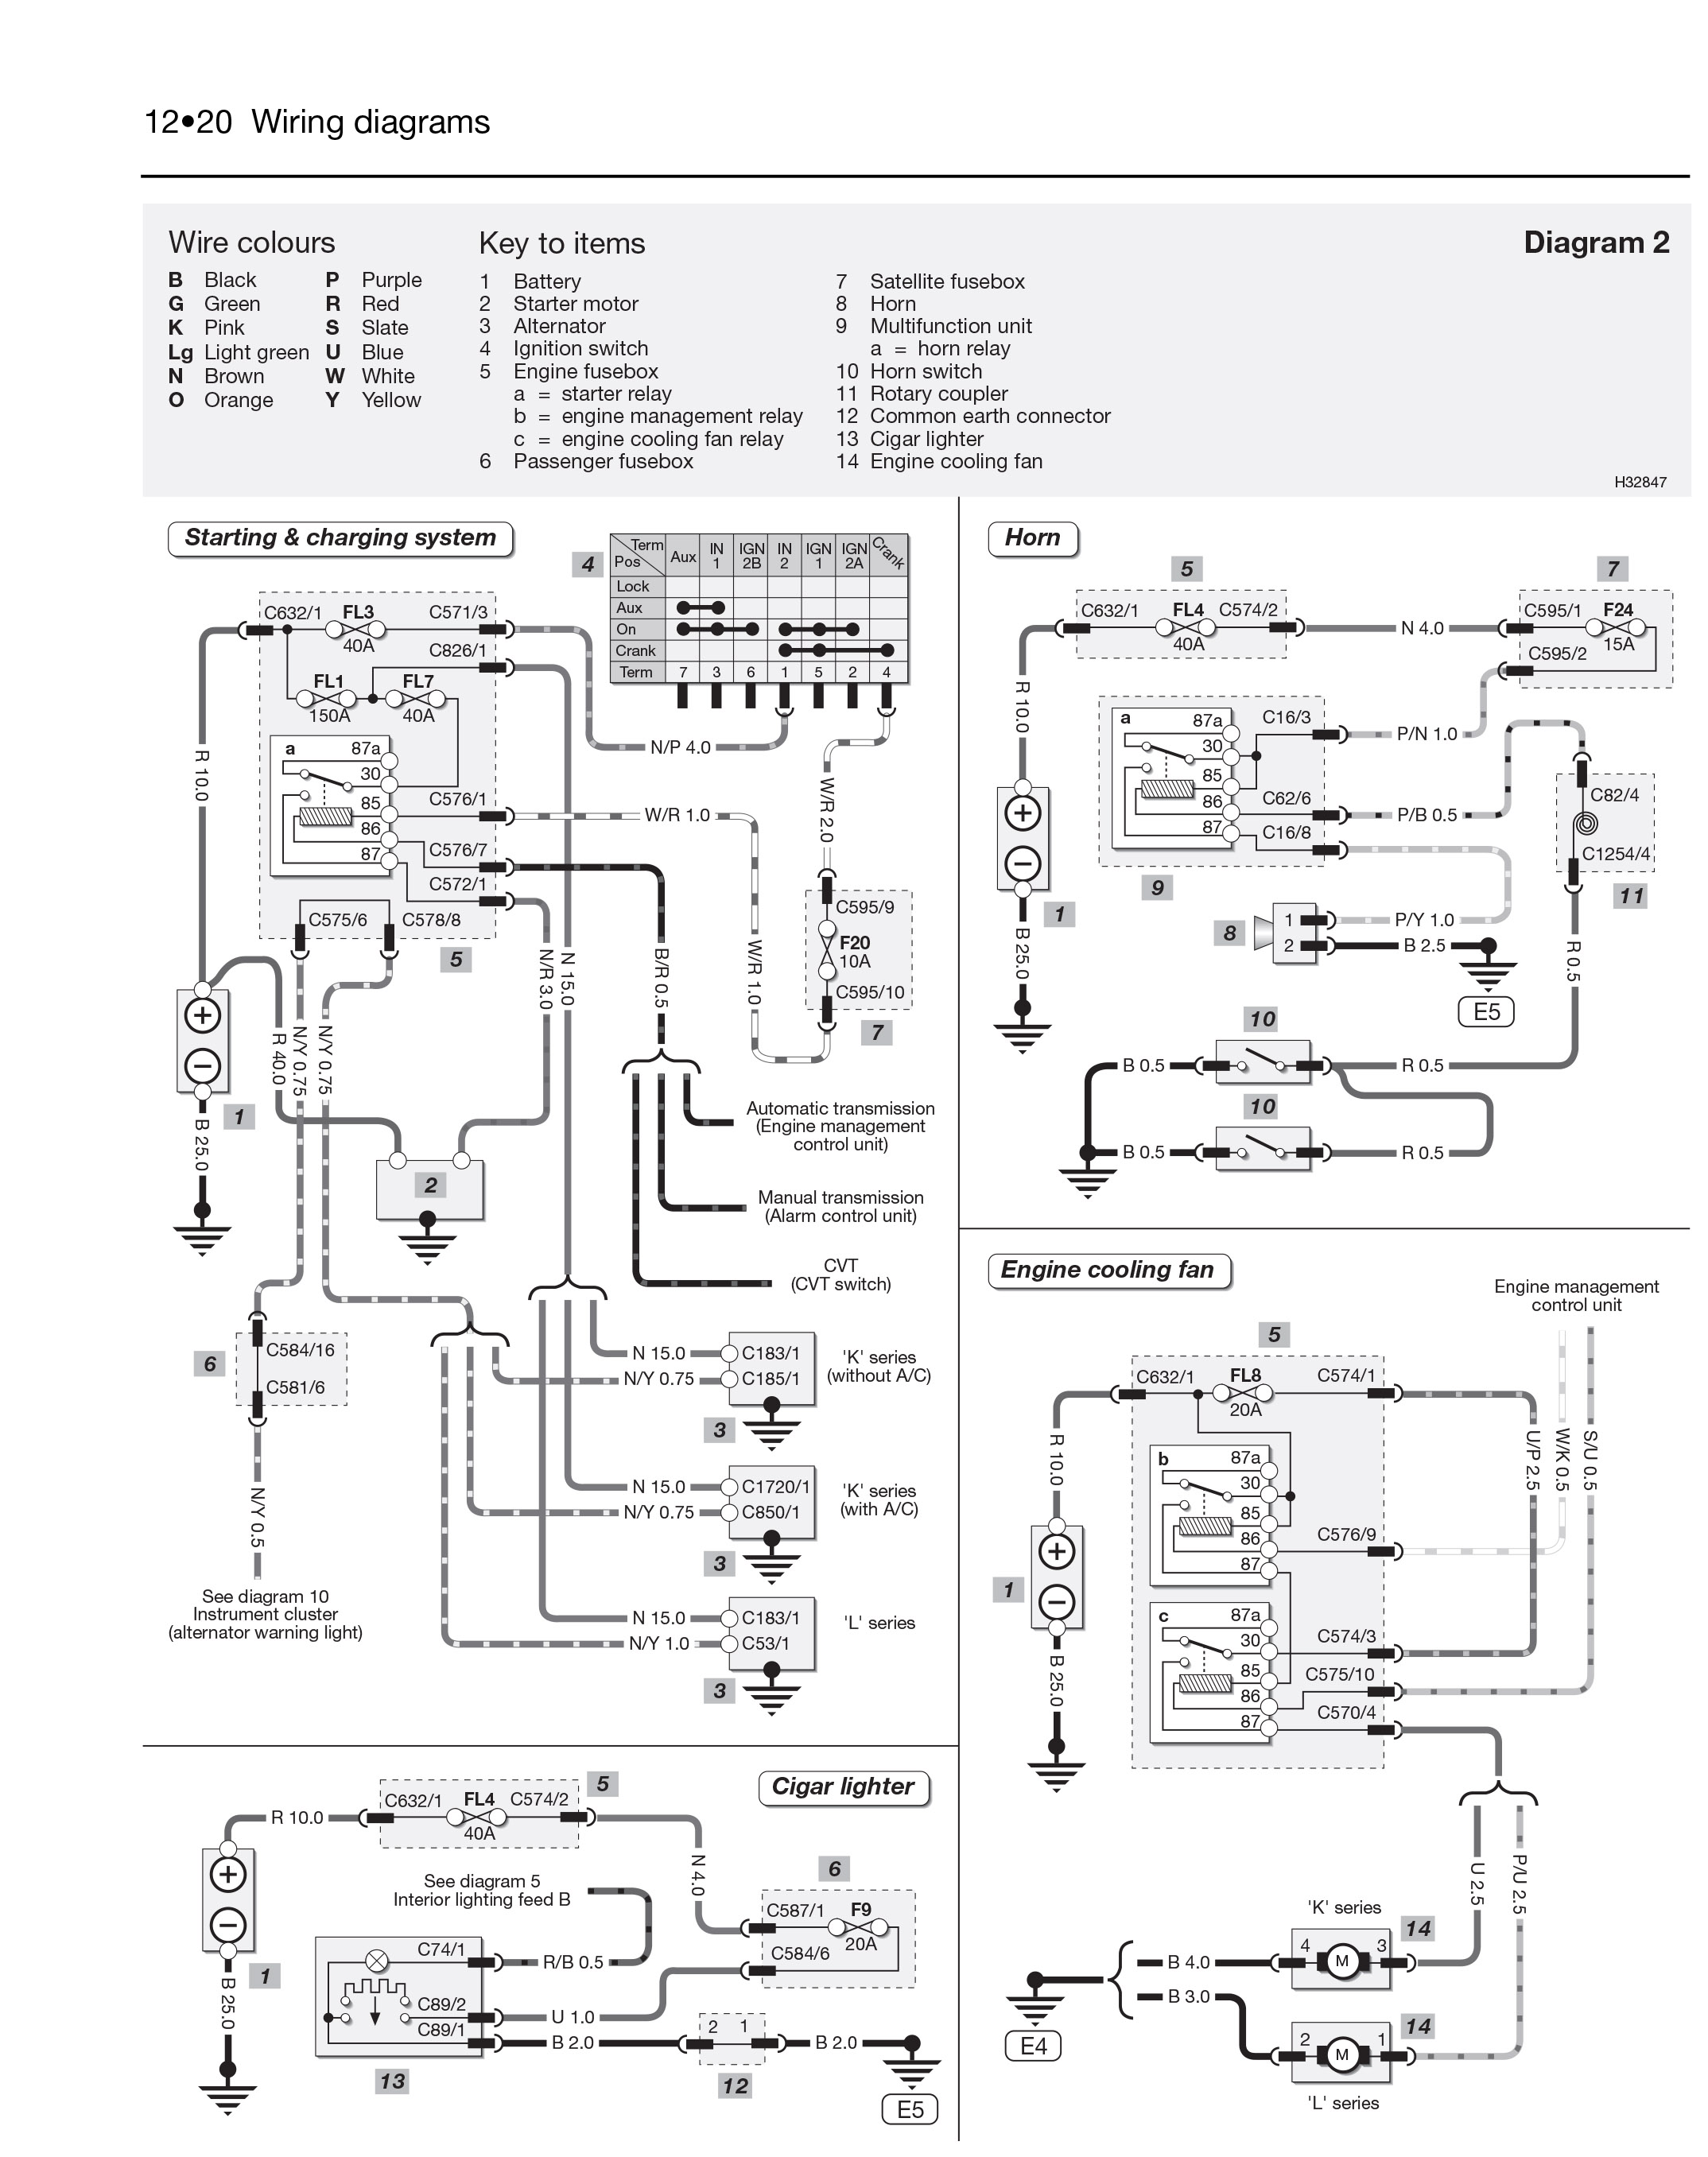 diagram] land rover starter motor wiring diagram full version hd quality wiring  diagram - okcwebdesigner.kinggo.fr  okcwebdesigner kinggo fr